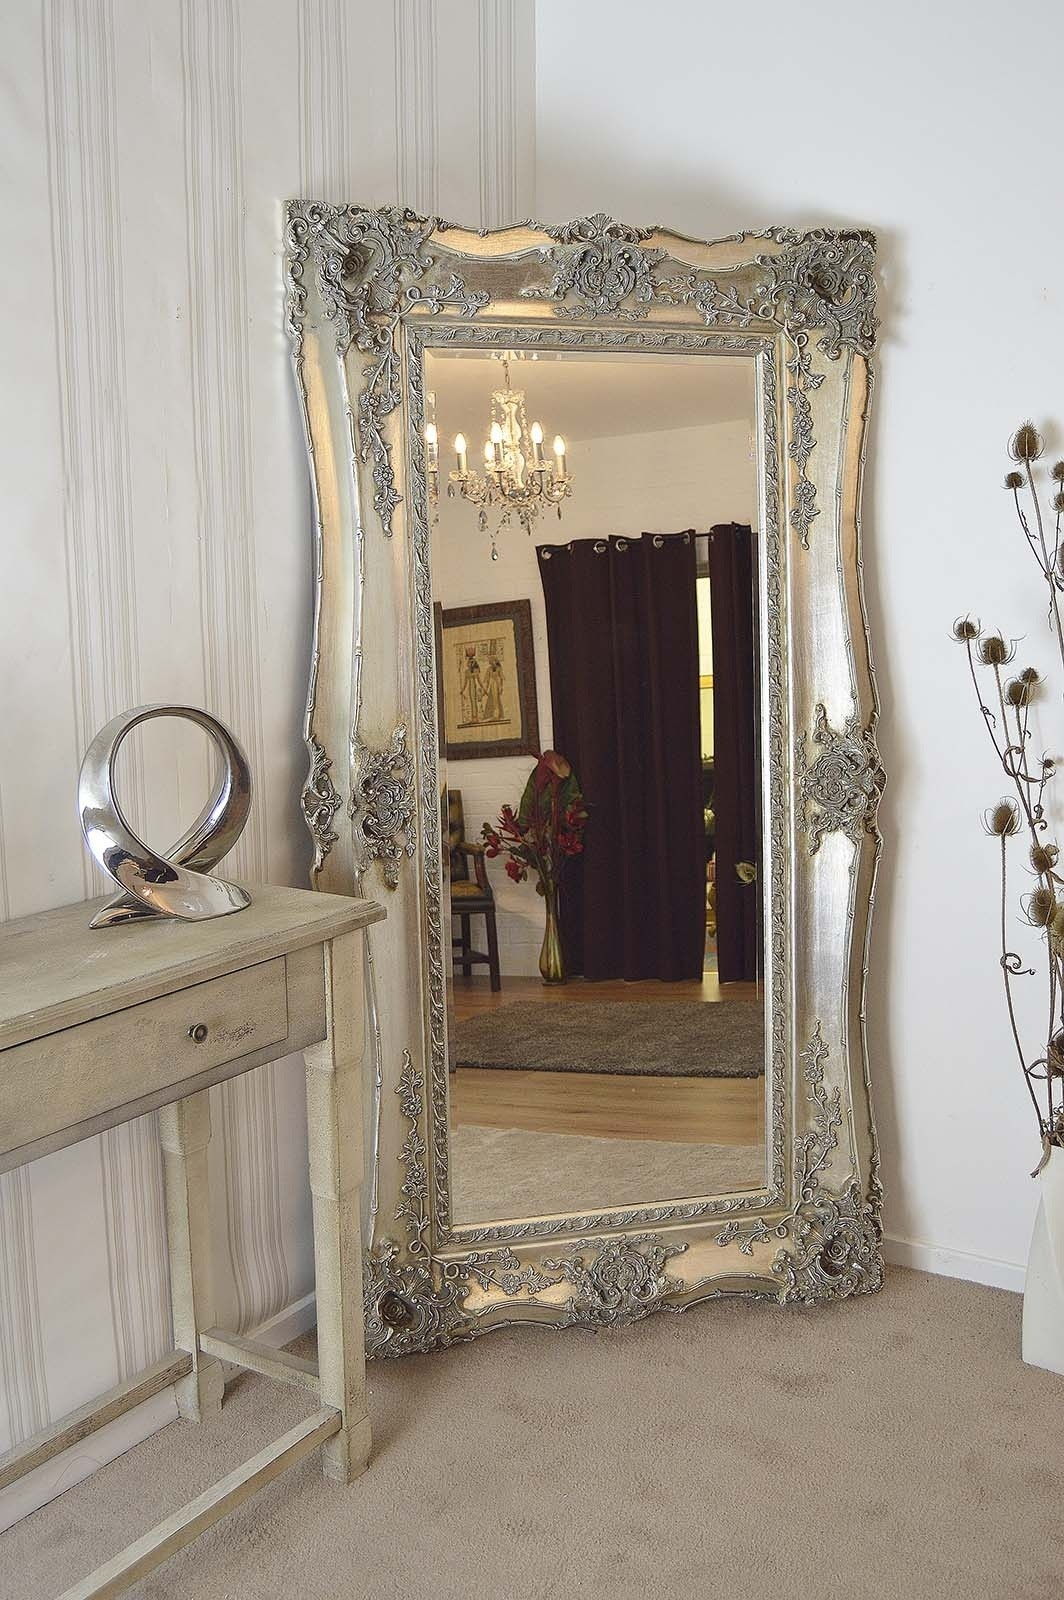 Extra Large Very Ornate Full Length Antique Silver Big Wall Mirror For Ornate Antique Mirrors (Image 4 of 14)